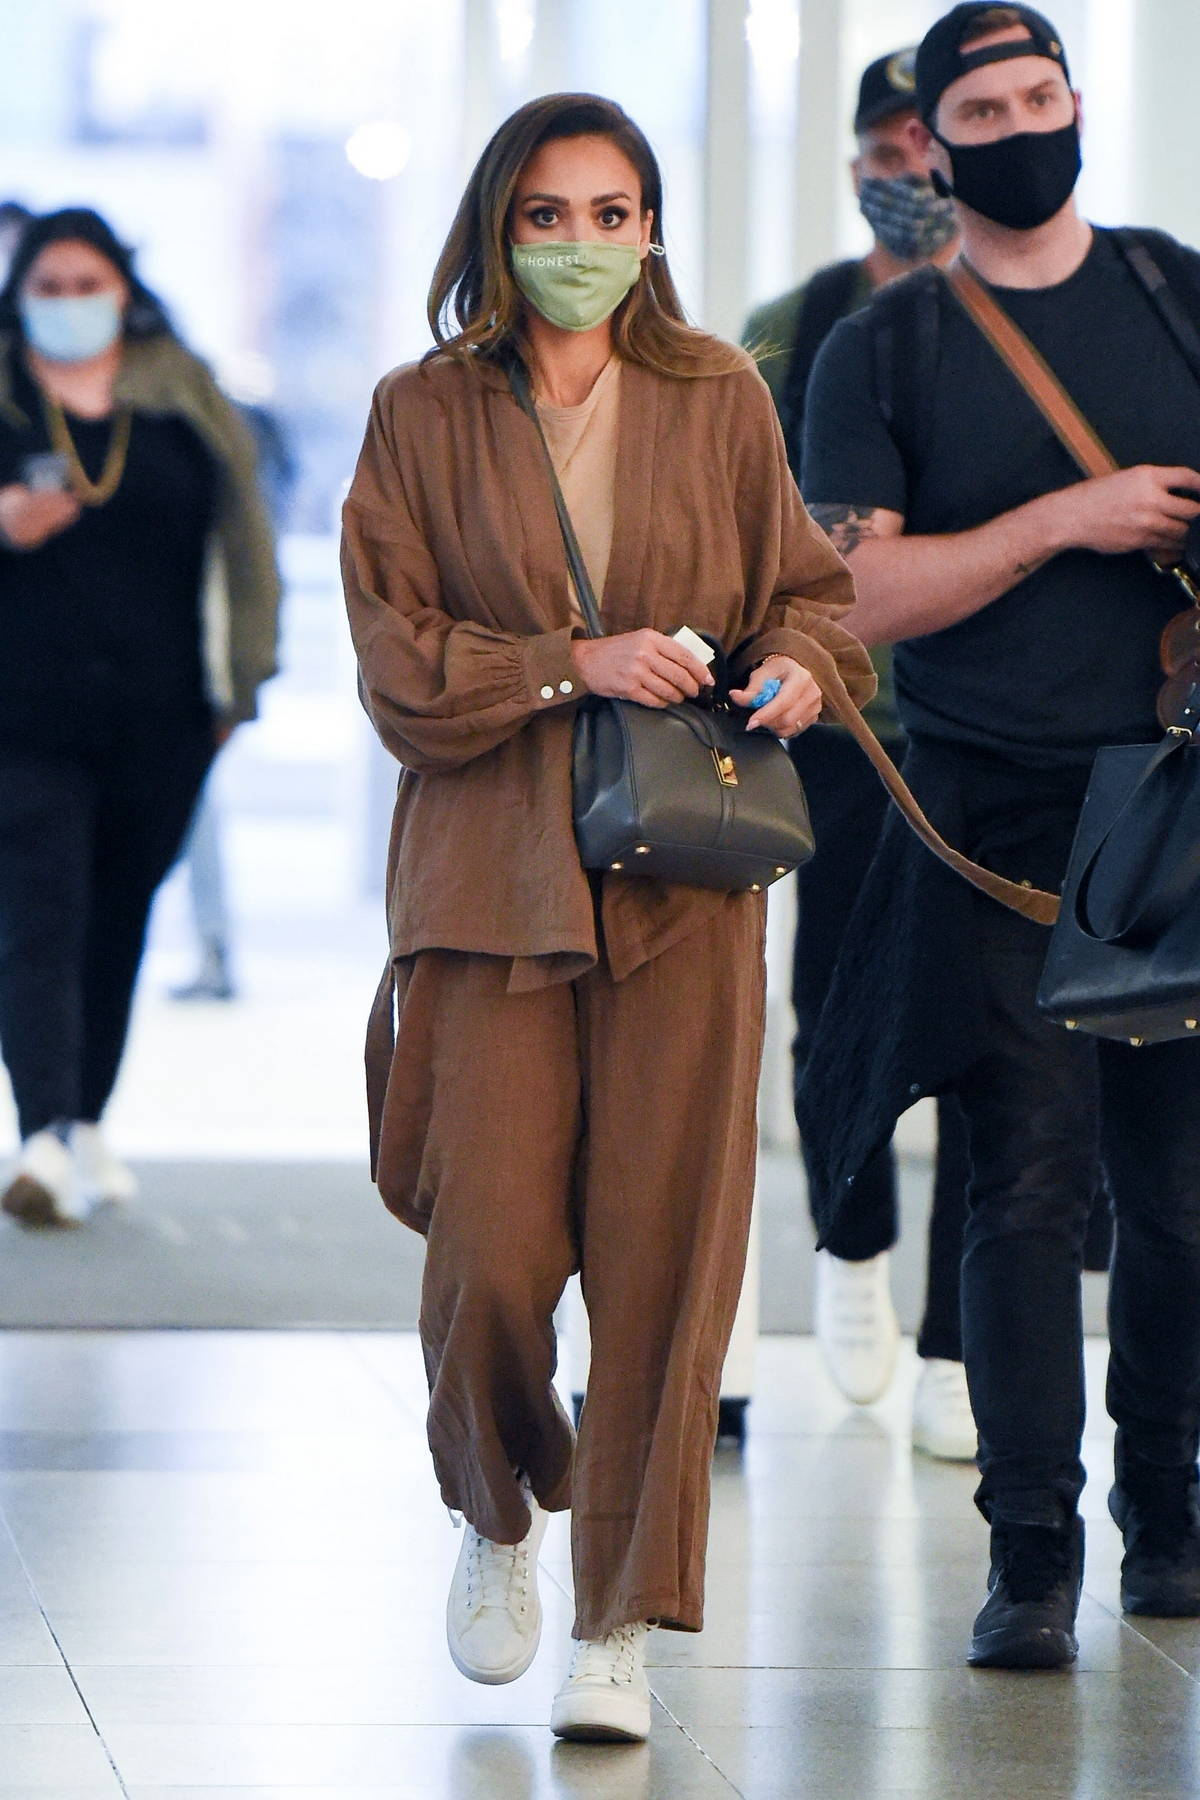 Jessica Alba and her husband Cash Warren seen arriving at JFK airport in New York City